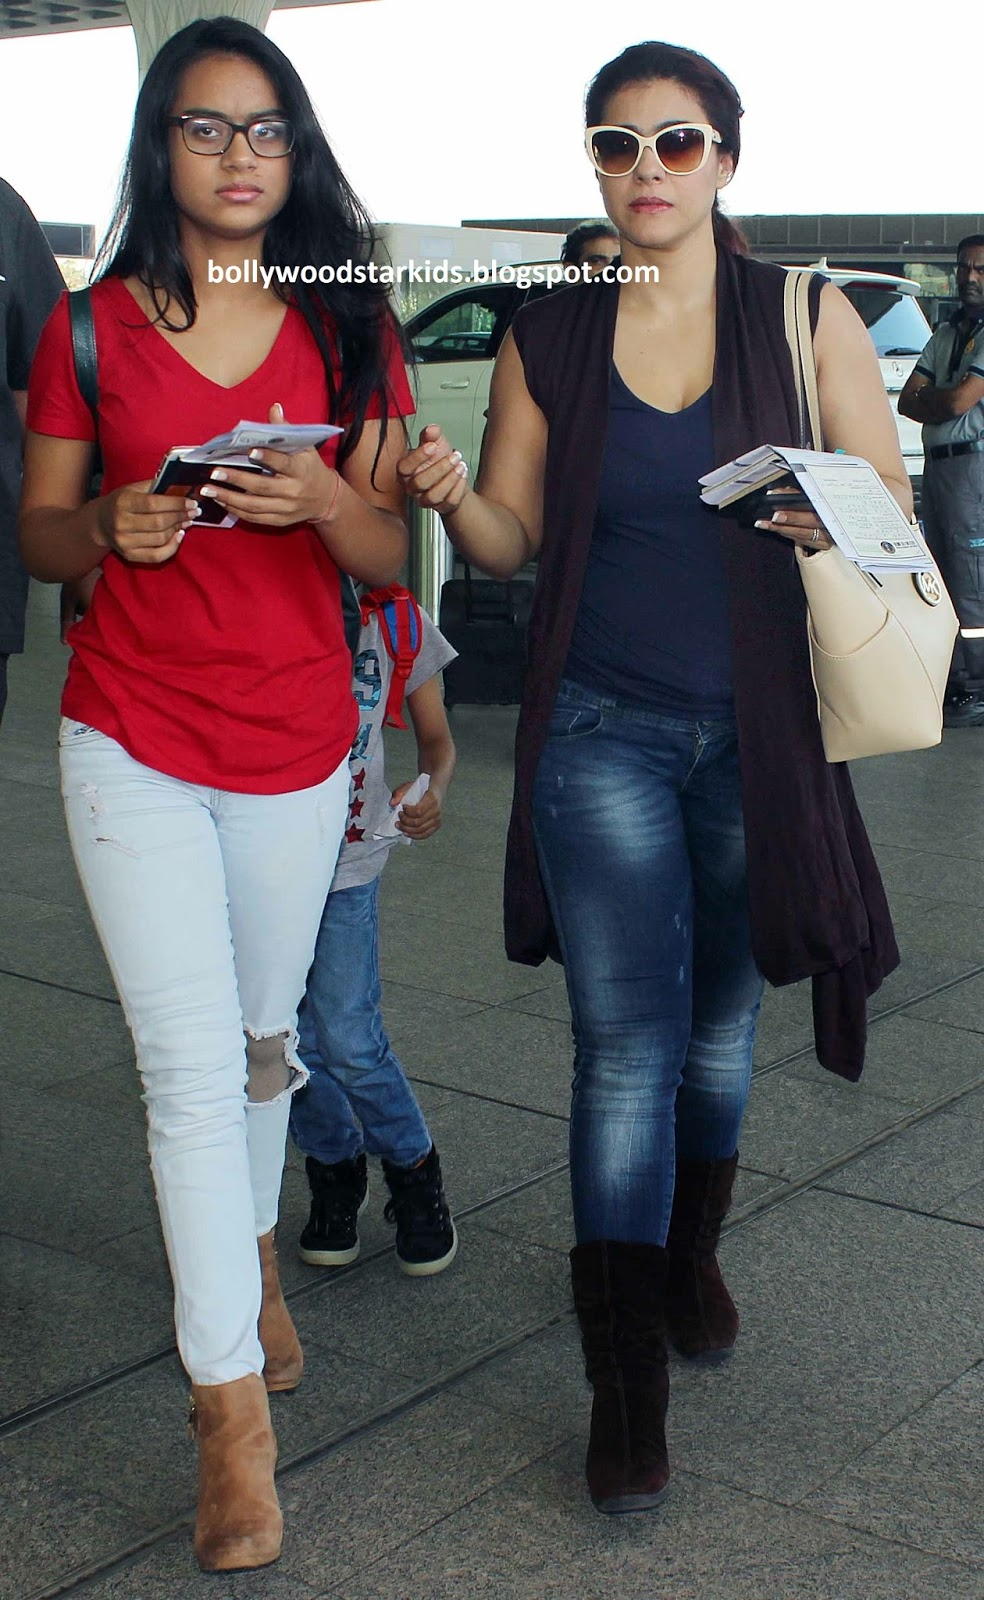 Bollywood Star Kids Ajay Devgan And Kajol On Family Trip -9891